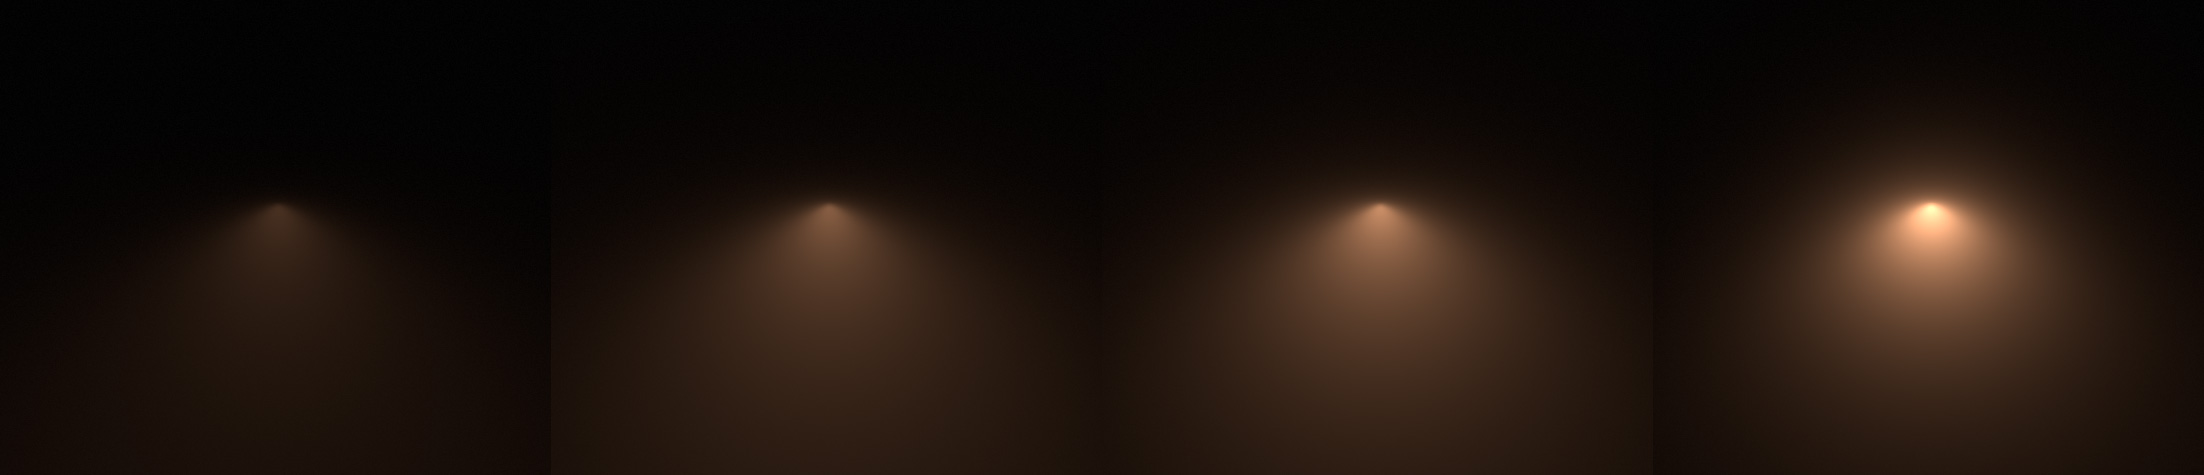 Lower to higher values of Mie scattering with a spot light. & Hx Volumetric Lighting azcodes.com